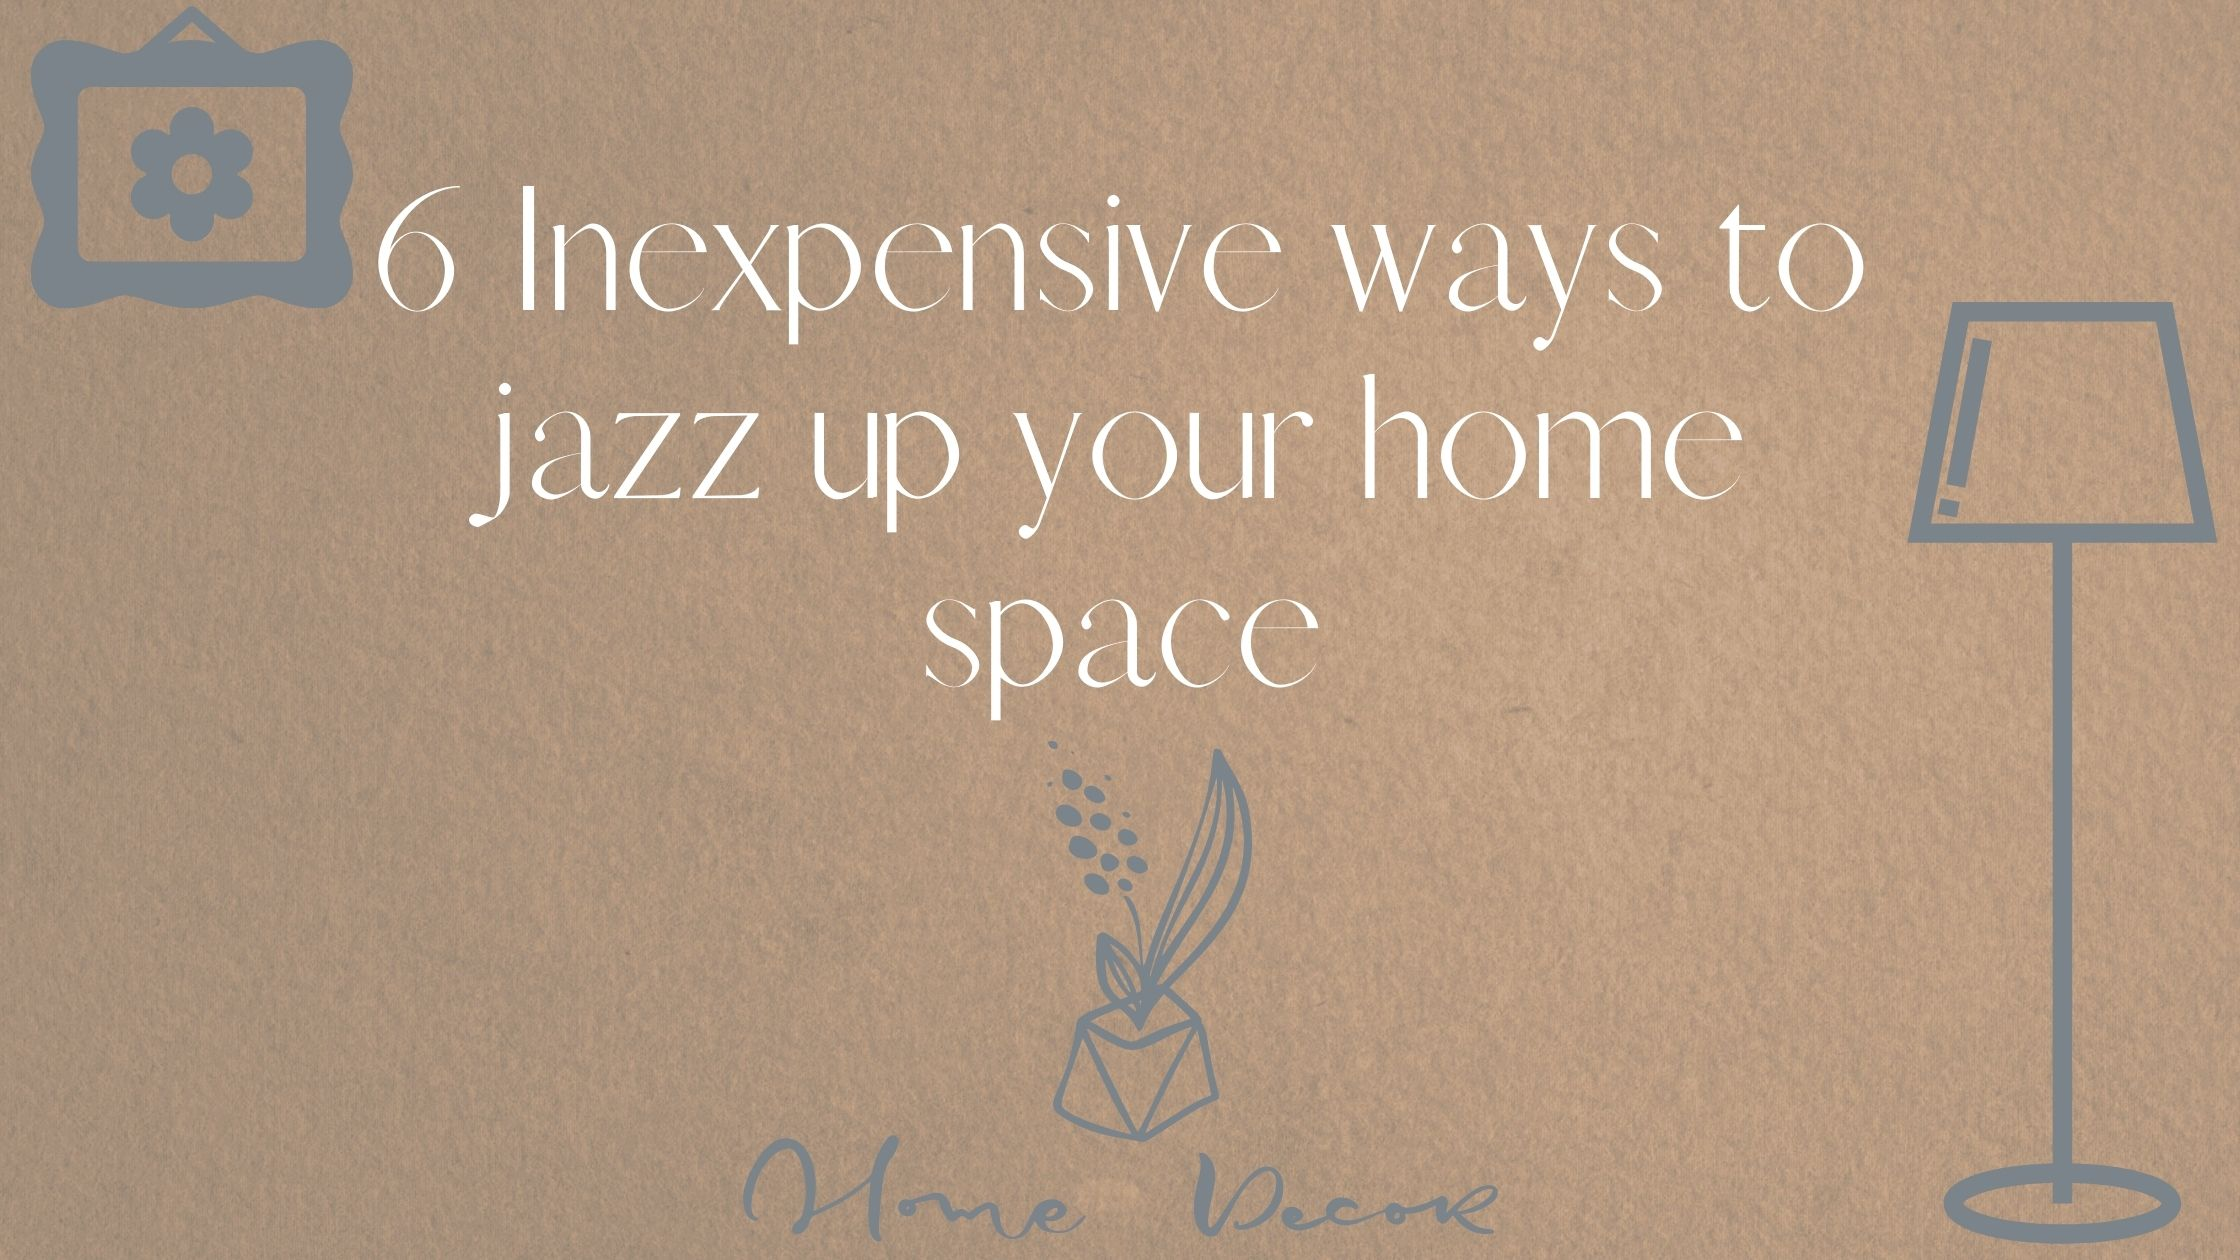 jazz up your home space